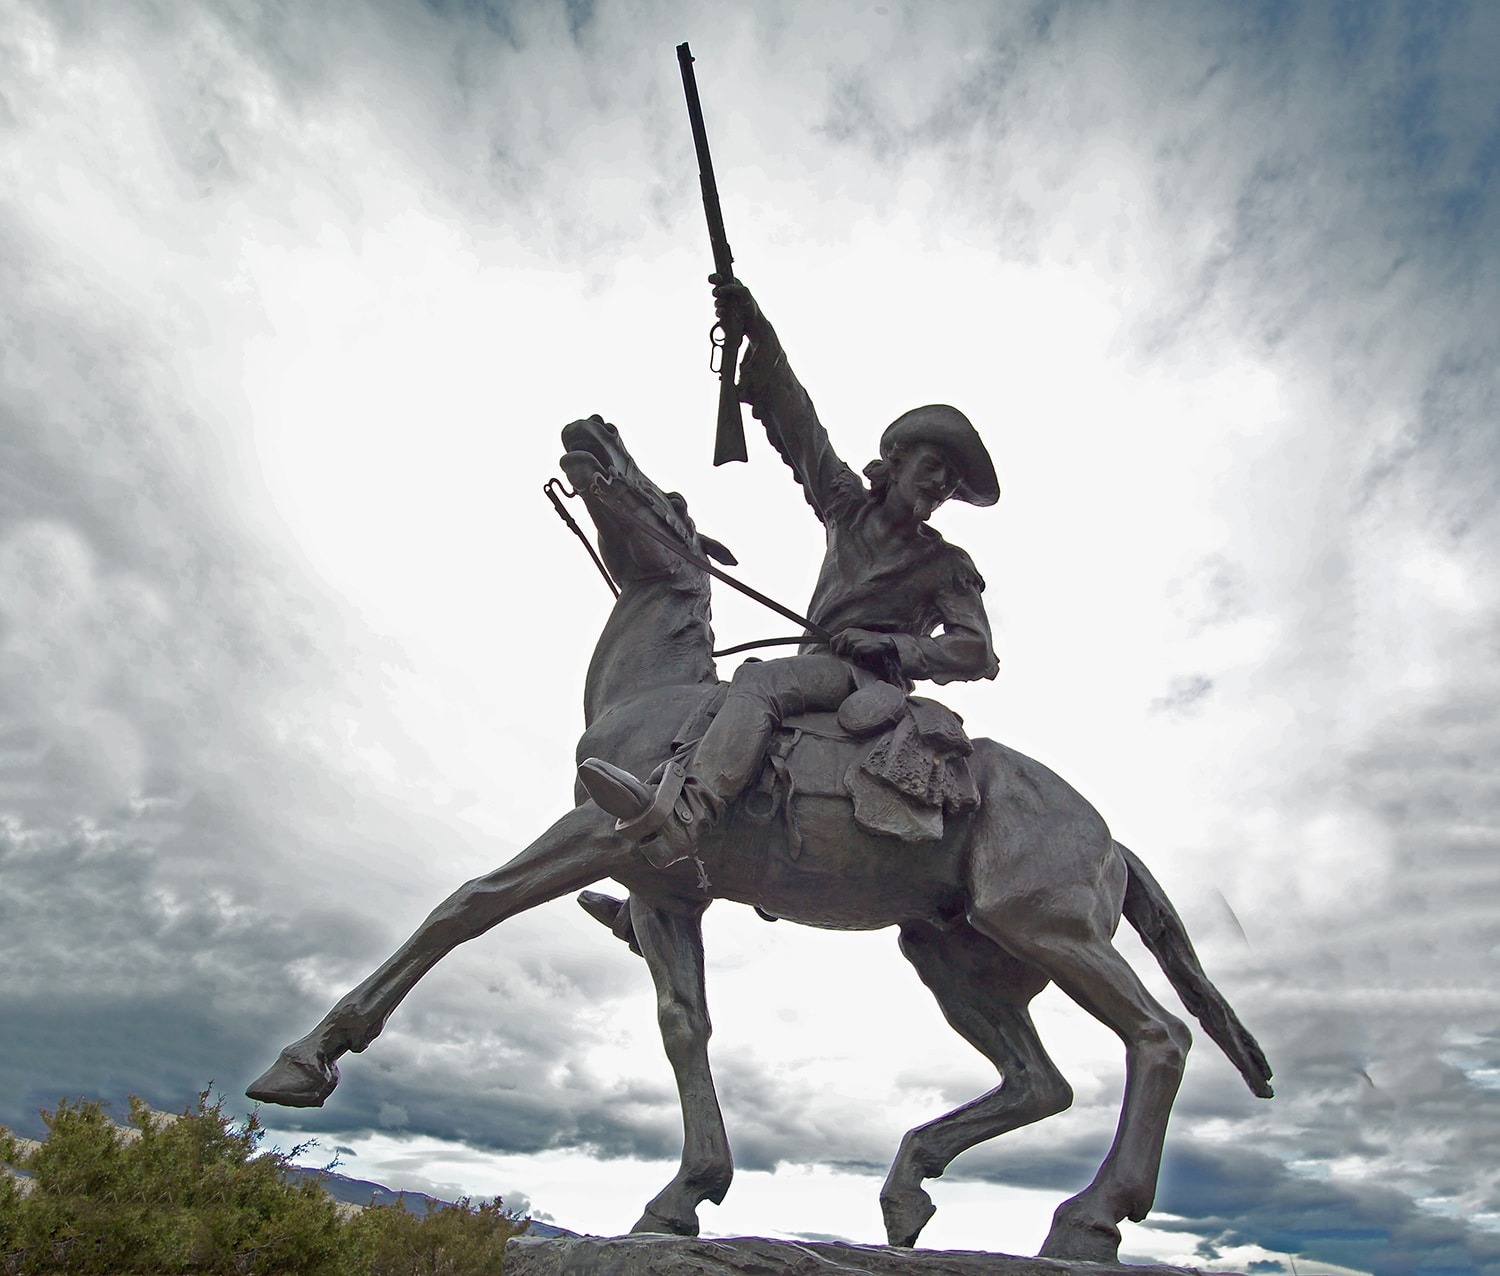 Statue of a cowboy on horseback raising his rifle high